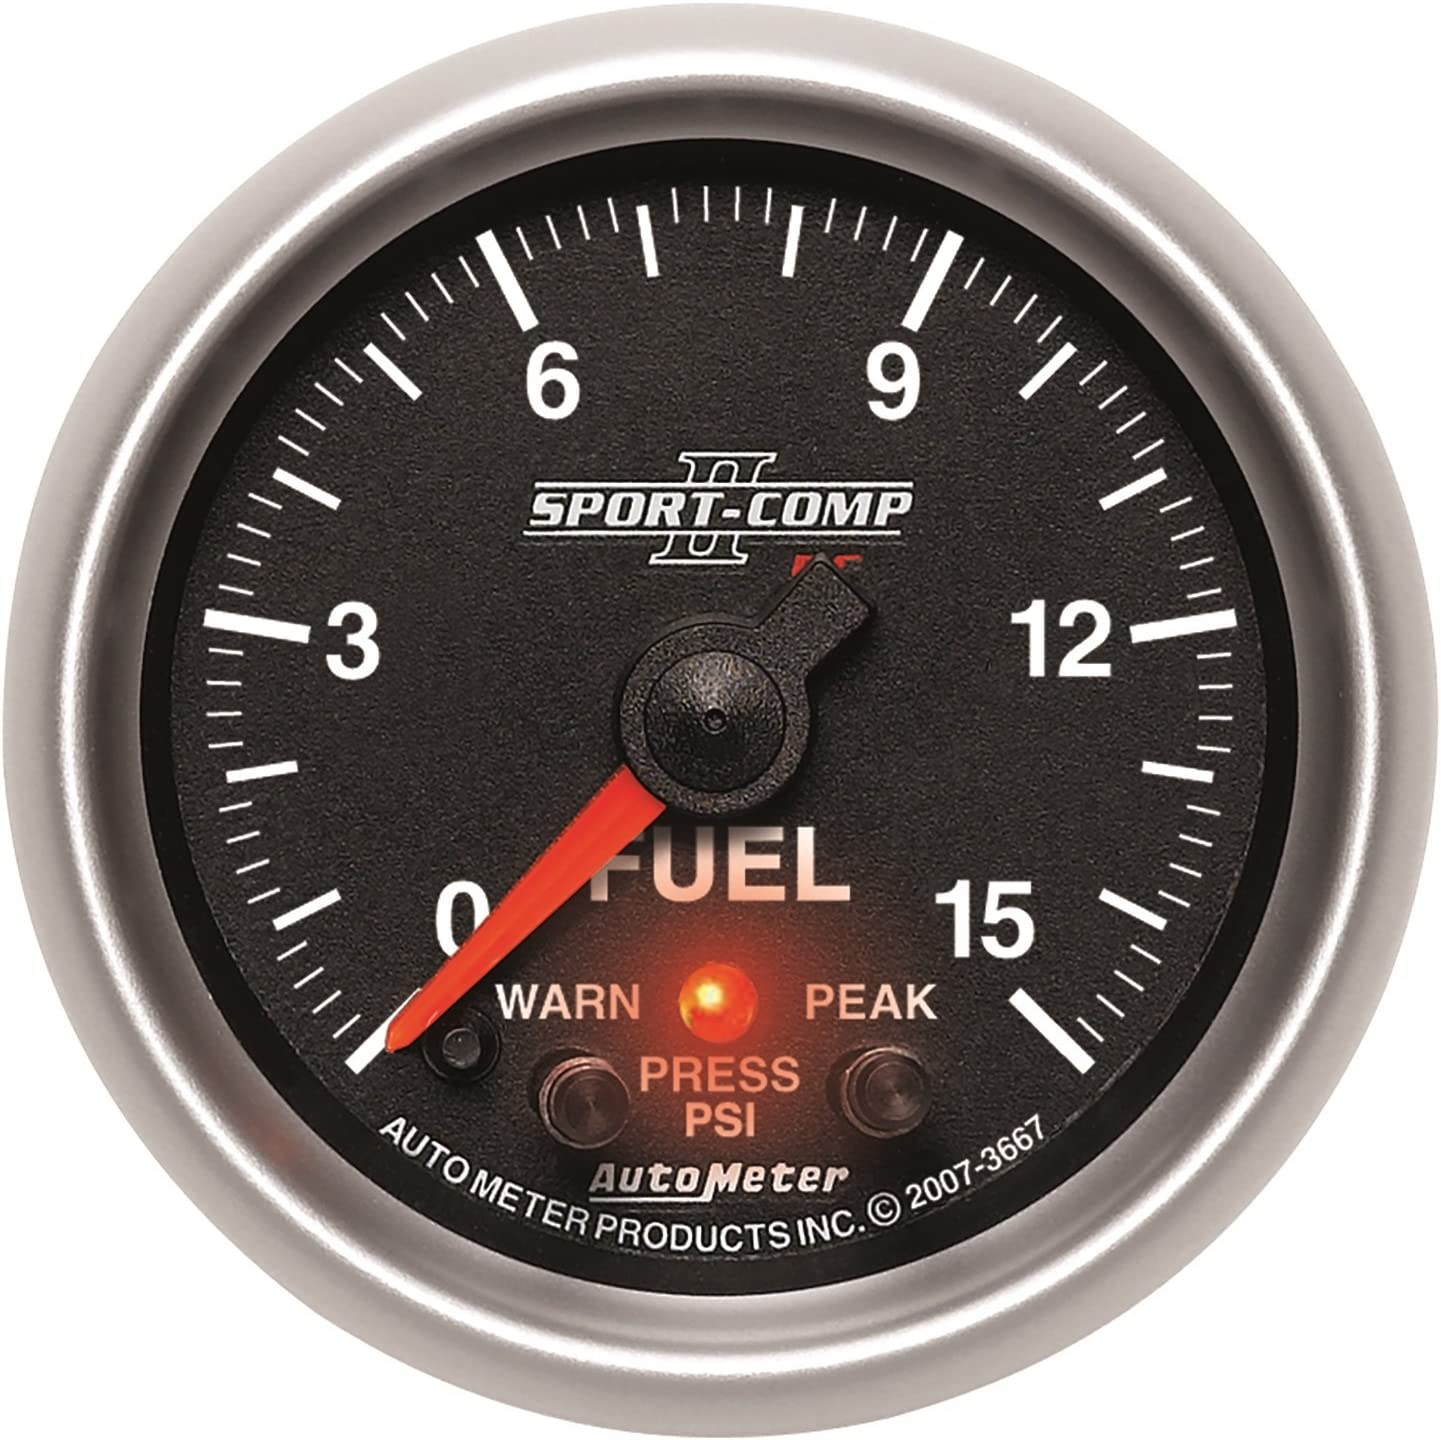 Auto Meter 3667 Sport-Comp II 2-1//16 0-15 PSI Full Sweep Electric Fuel Pressure Peak and Warn Gauge with Electronic Control